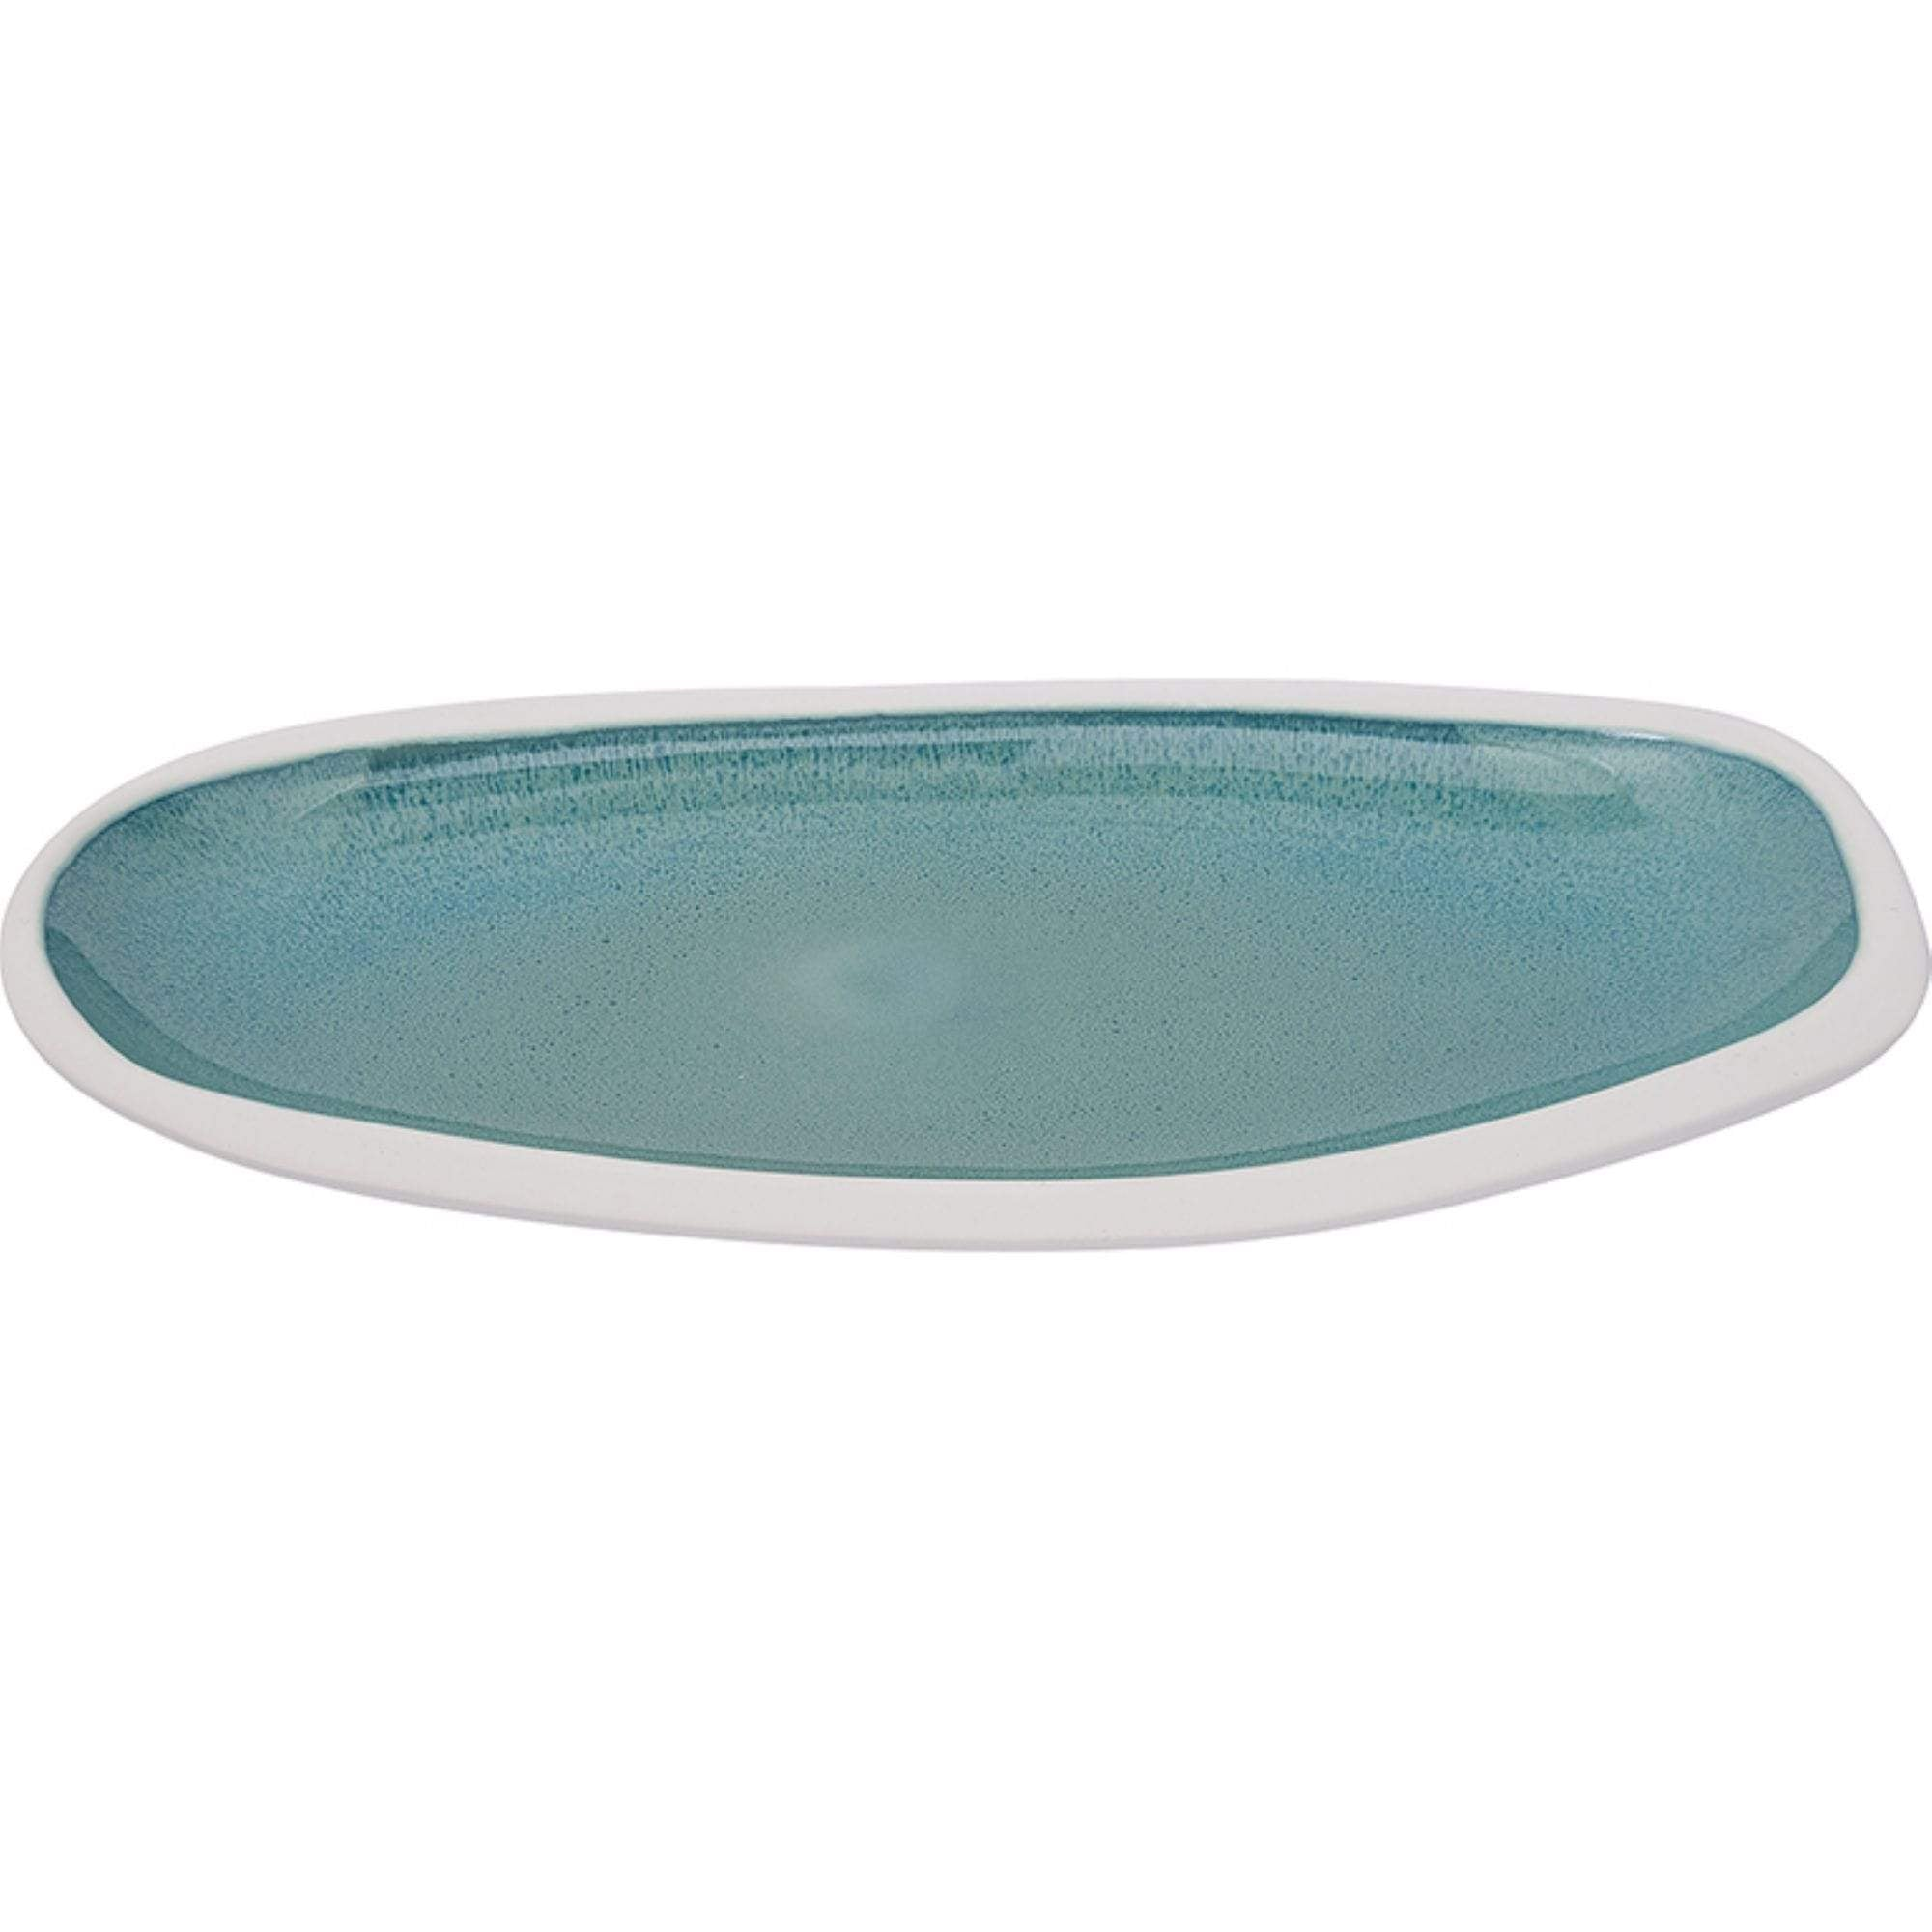 Batela Giftware-Crockery-Large Aquamarine Serving Platter